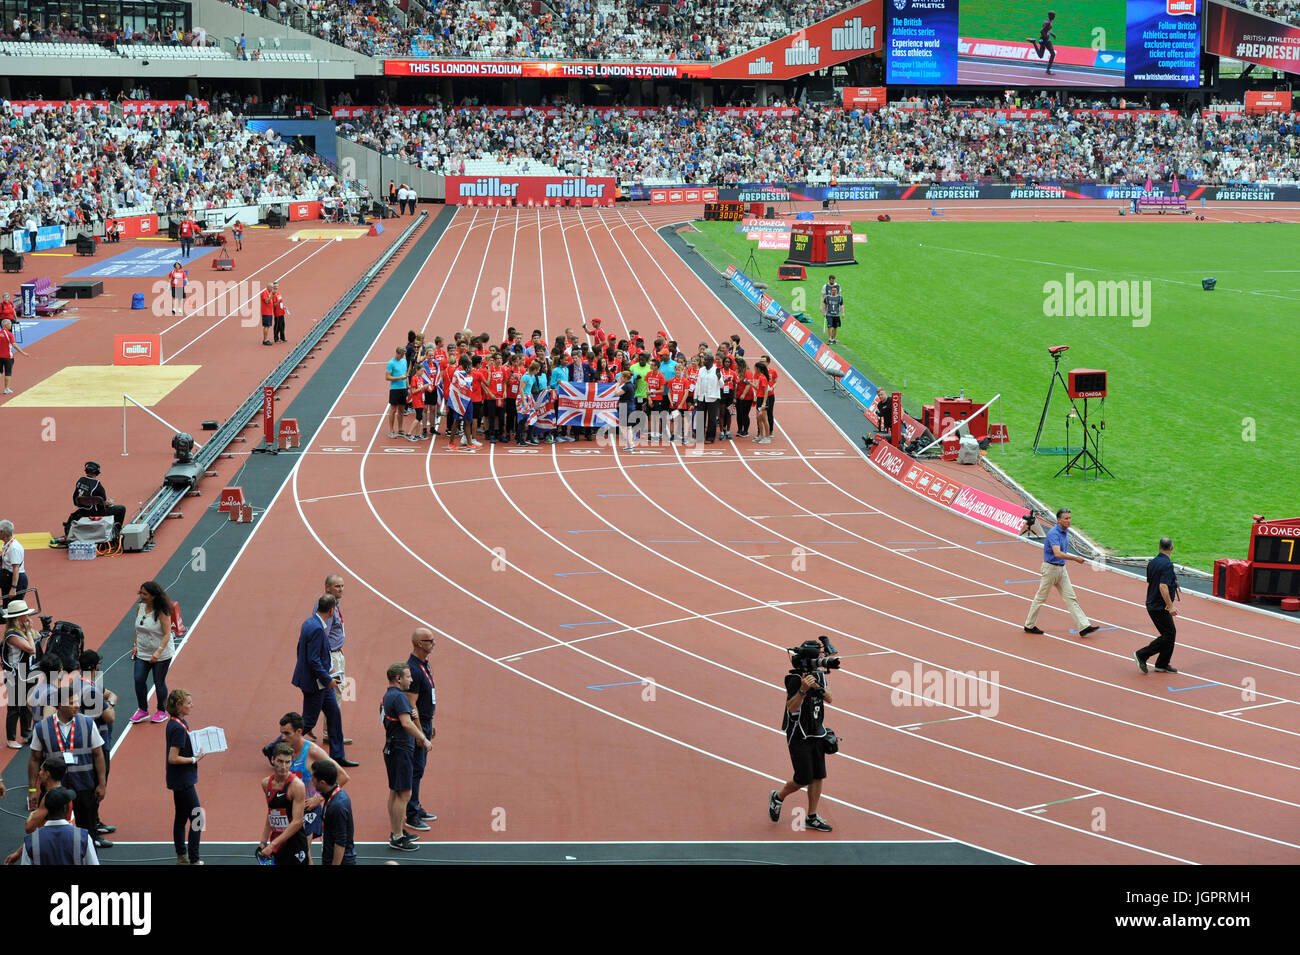 Stratford, UK. 9th Jul, 2017. Mo Farah ahead wins the race at IAAF Diamond League anniversary games, Stratford, - Stock Image